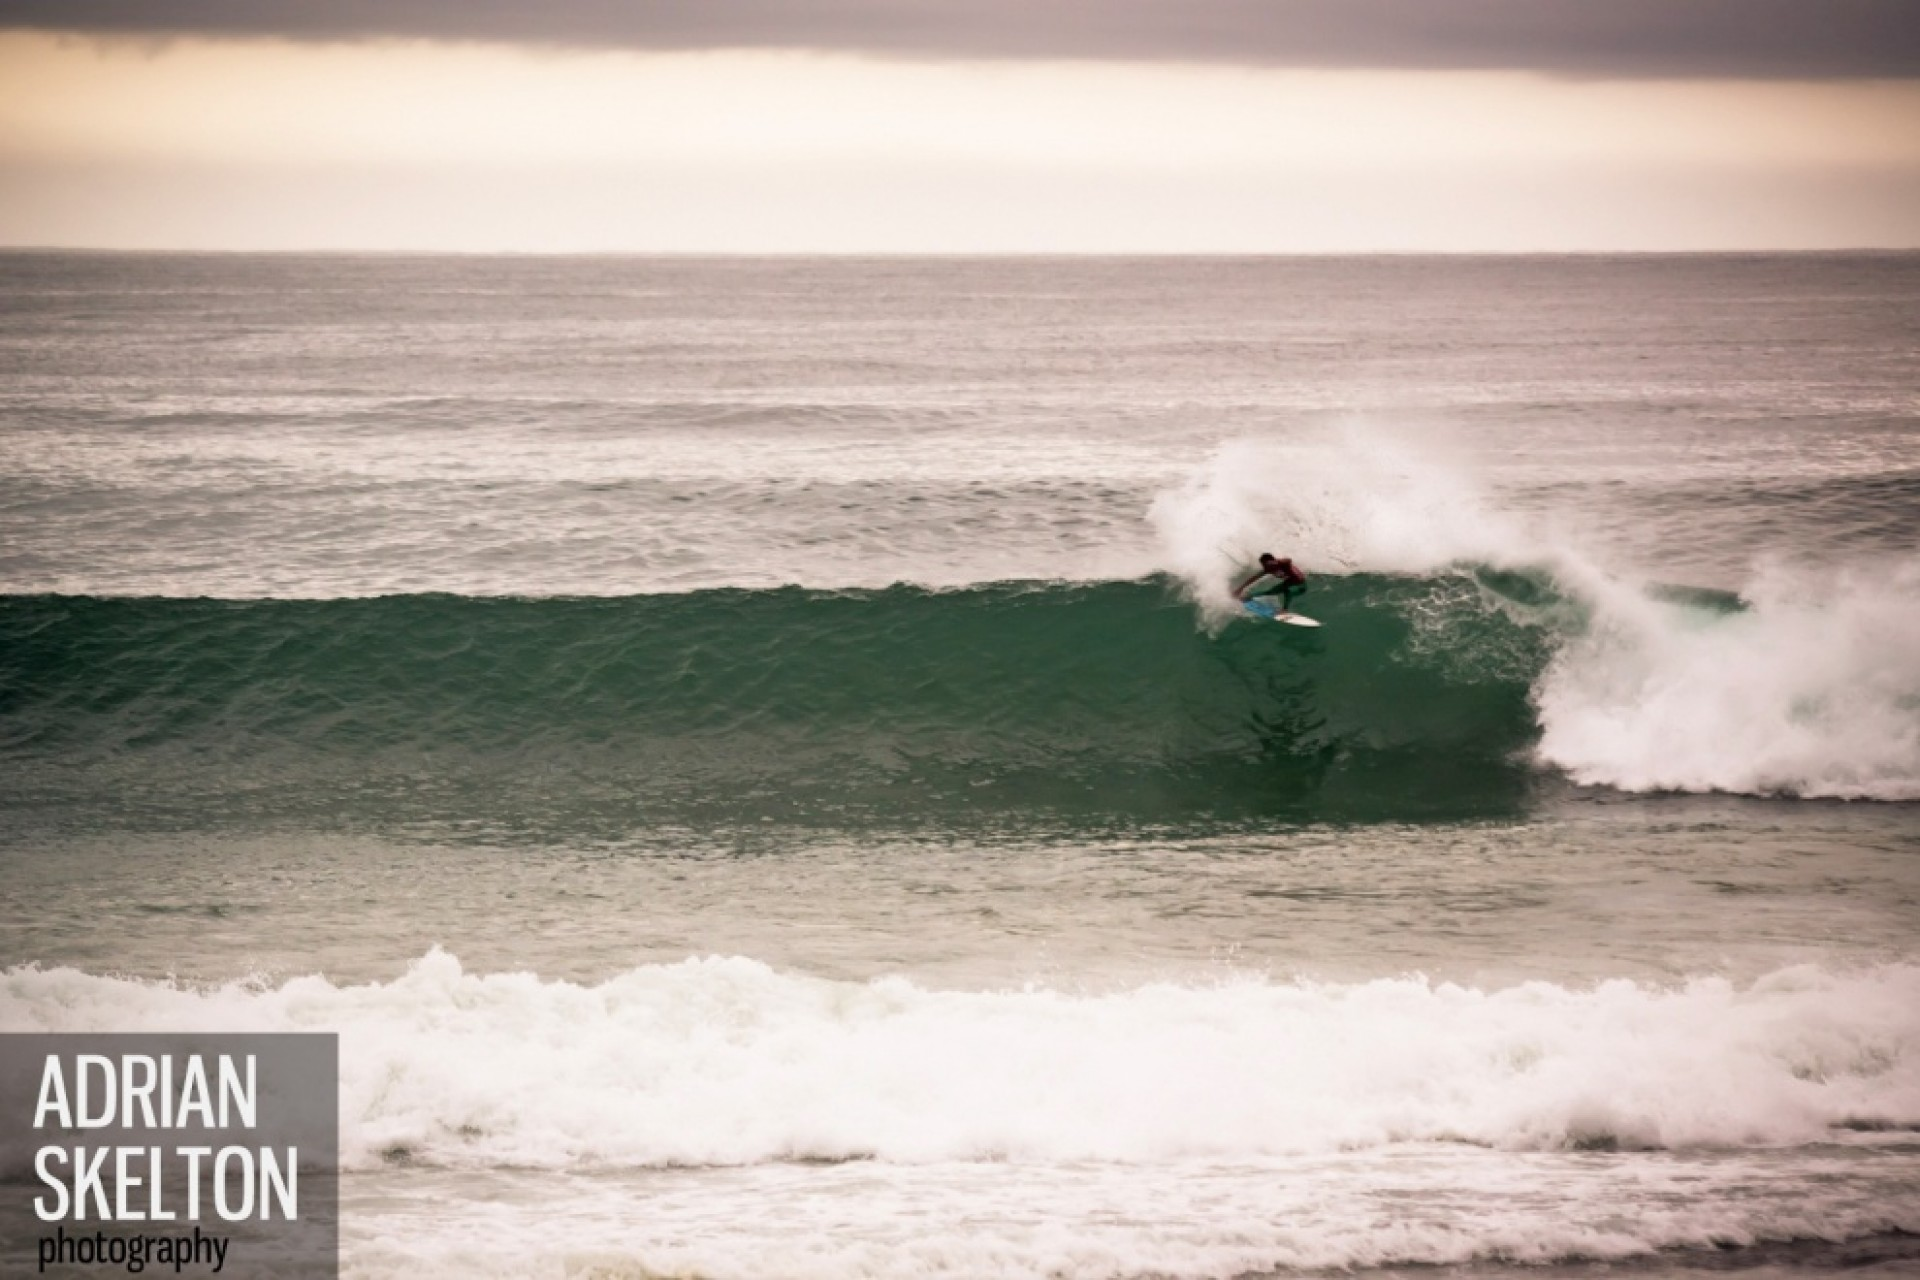 adrianskelton's photo of Jeffreys Bay (J-Bay)